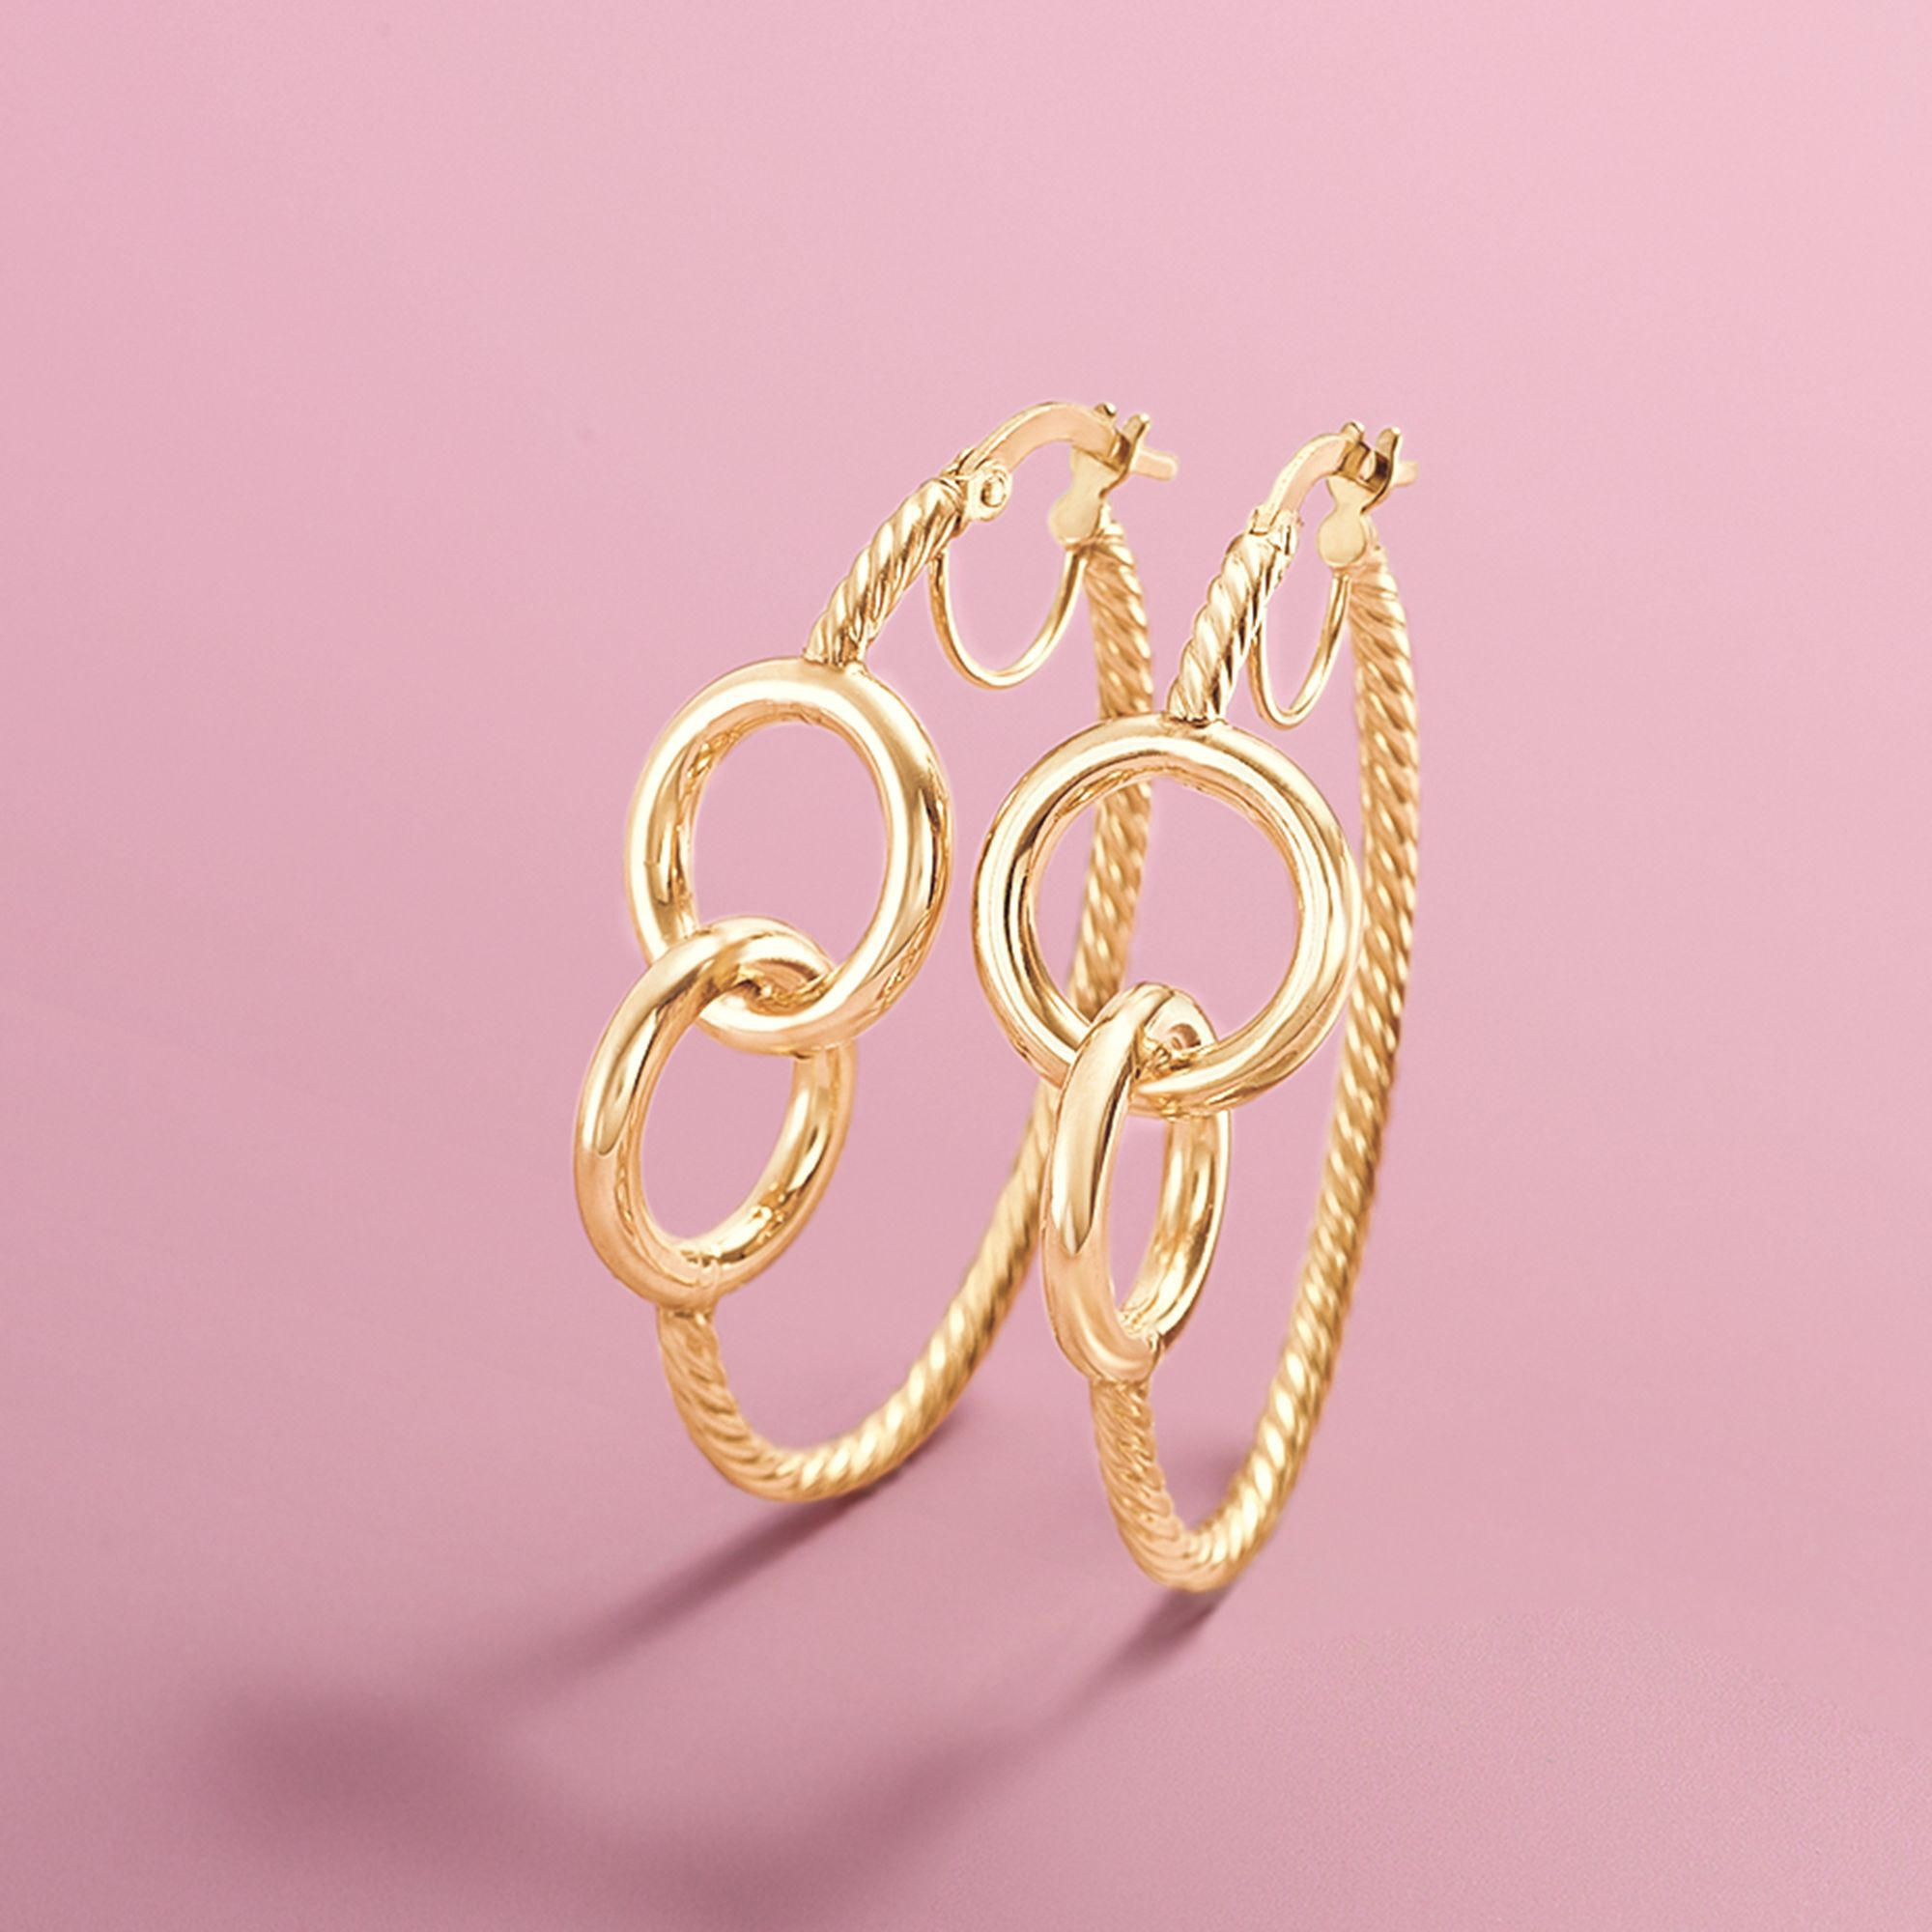 Italian 14kt Yellow Gold Roped Hoop Earrings With Eternity Circles ...